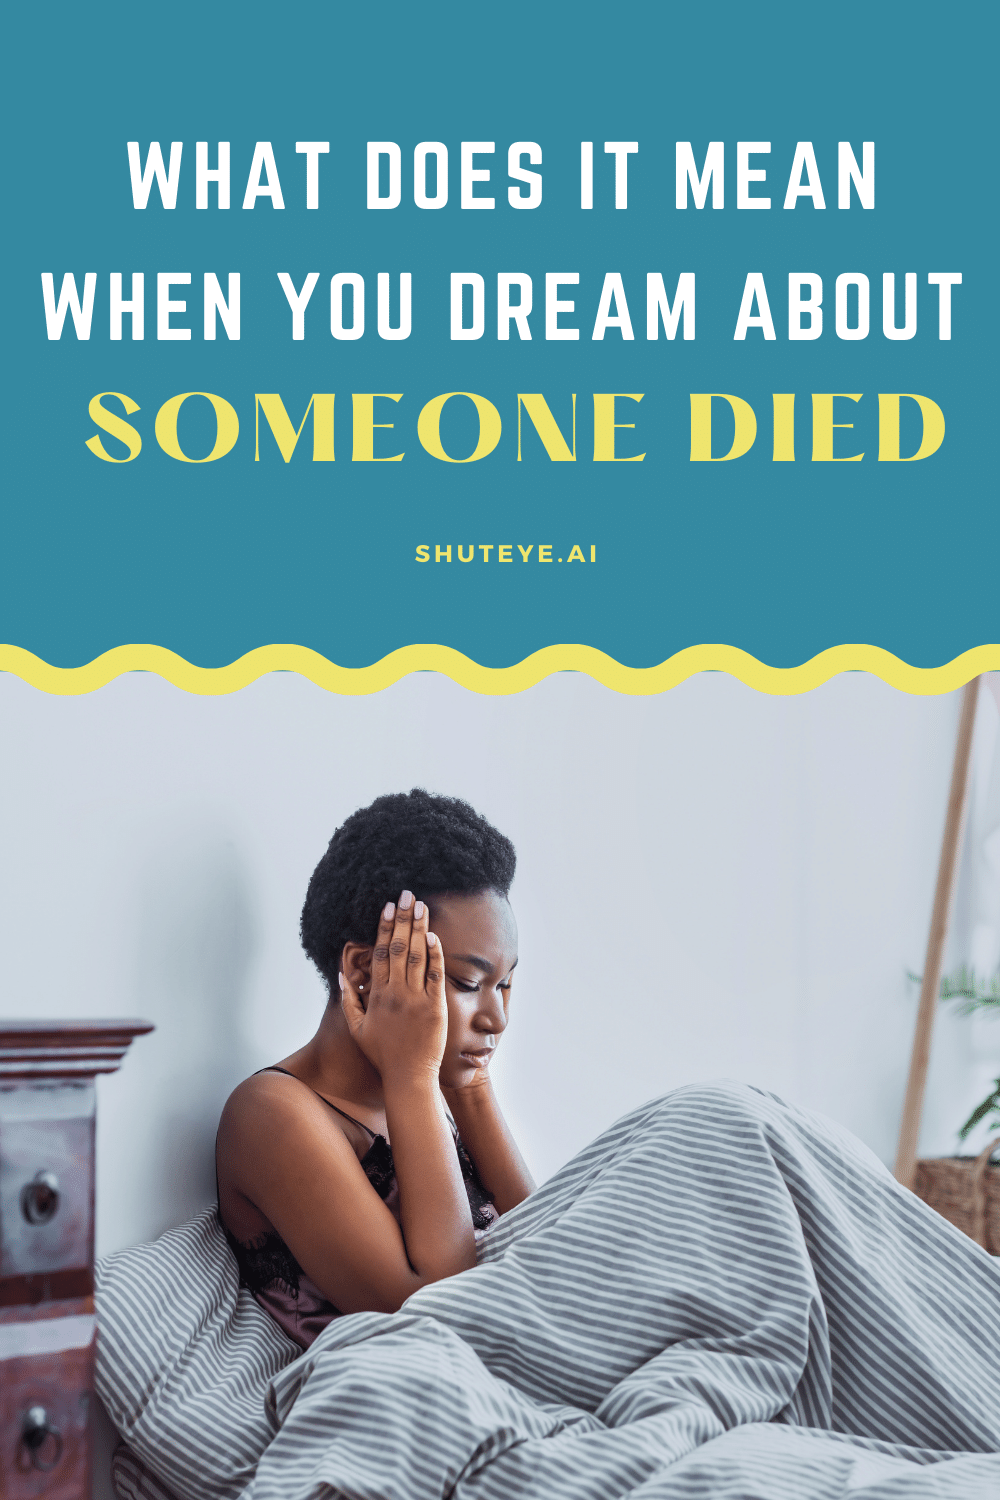 What Does it Mean When You Dream about Someone Died